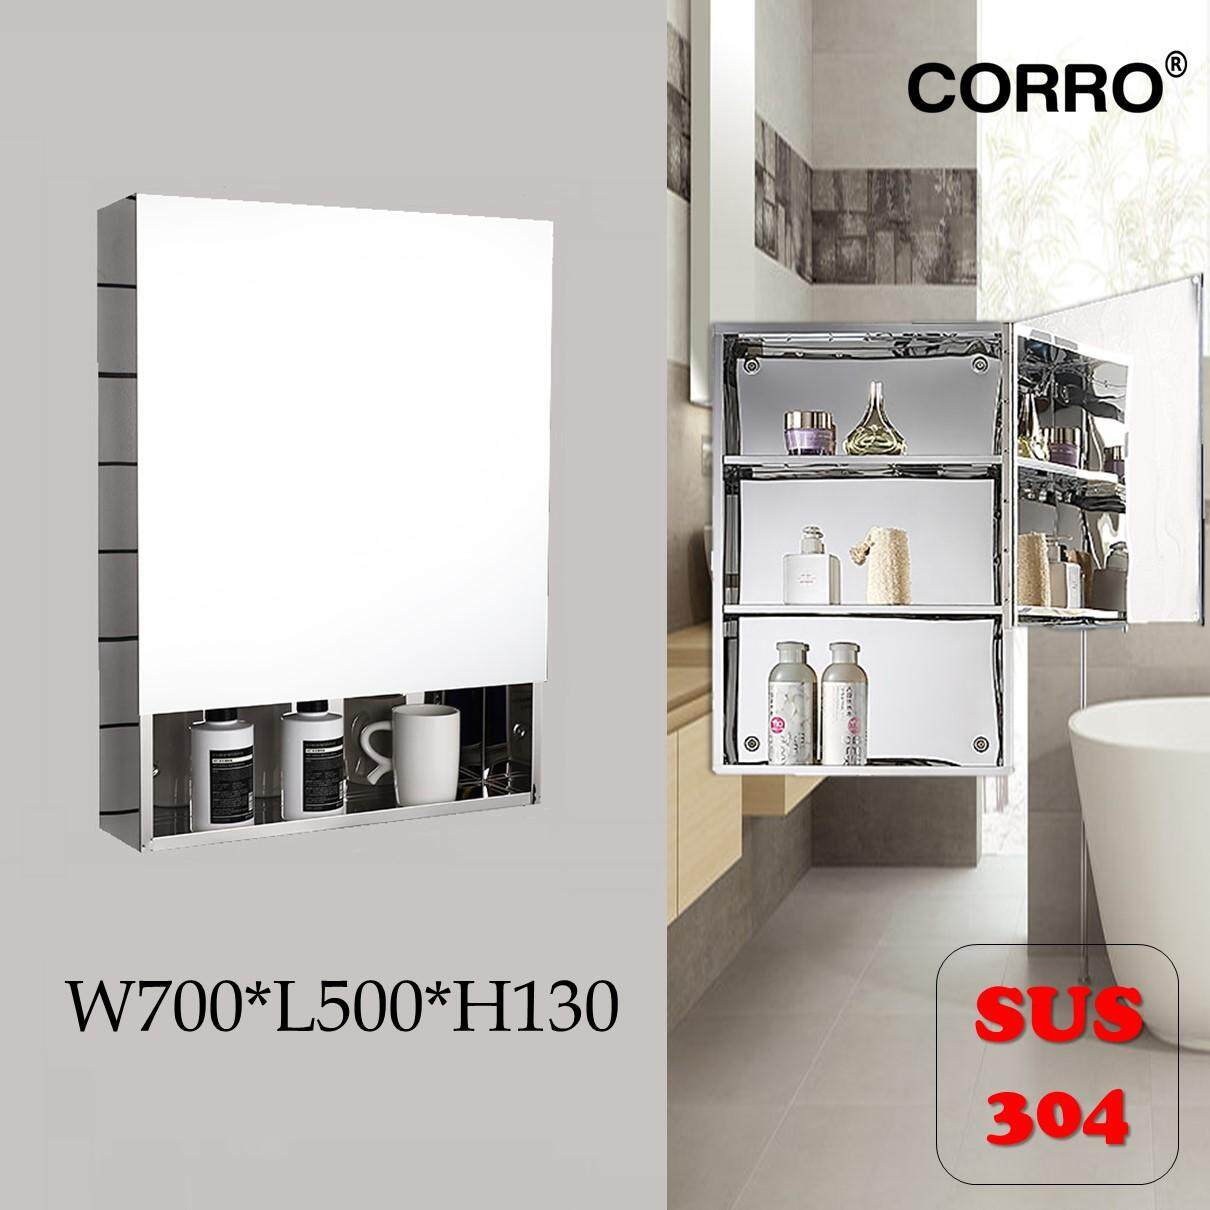 CORRO SUS304 100% Stainless Steel Bathroom Mirror Cabinet - L500*H700*W130